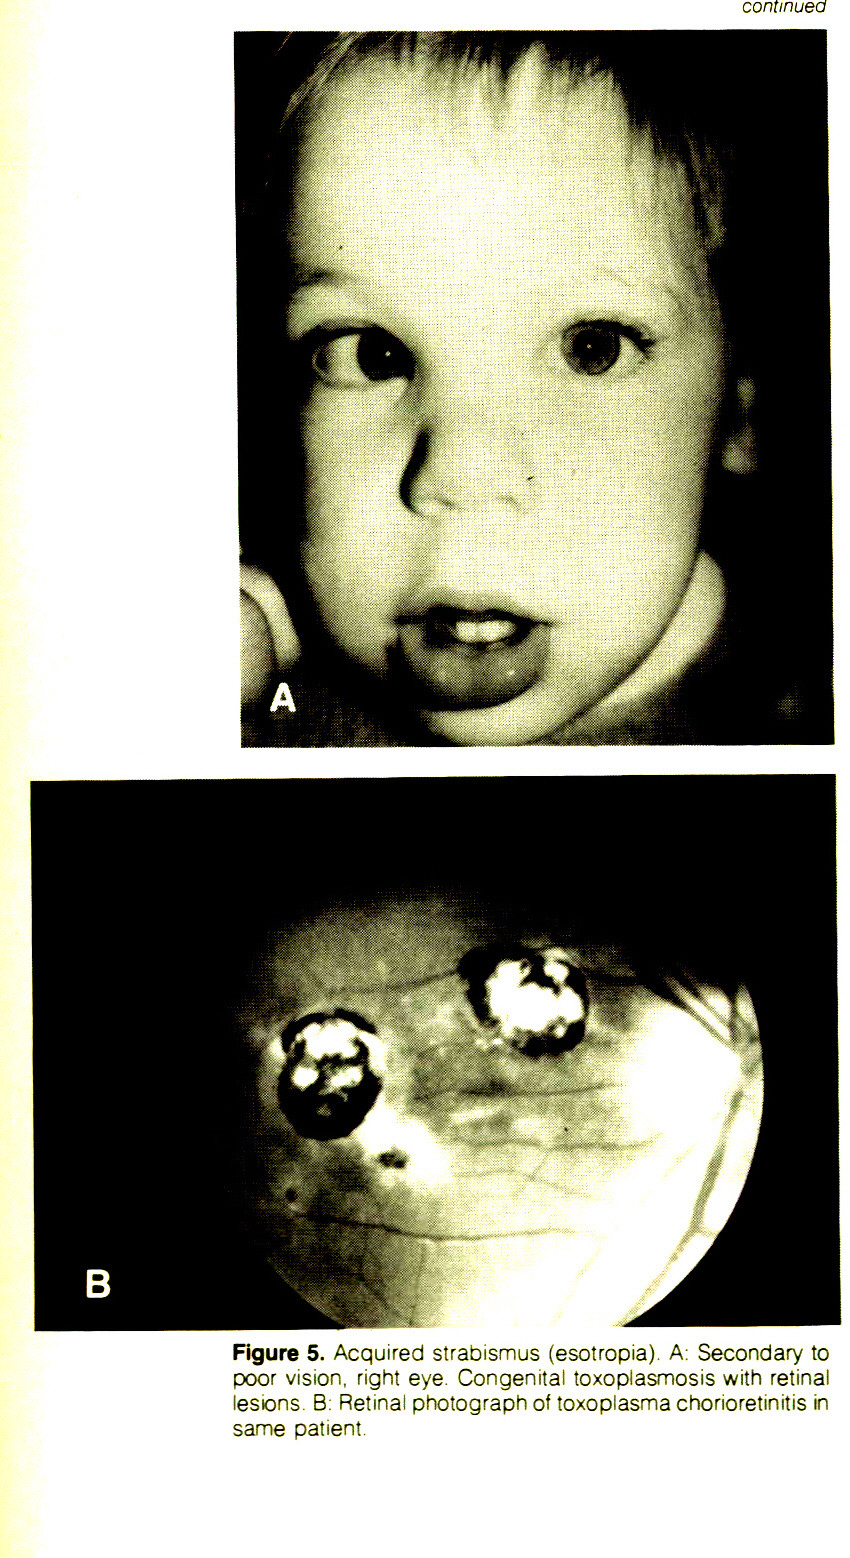 Figure 5. Acquired strabismus (esotropia). A: Secondary to poor vision, right eye. Congenital toxoplasmosis with retinal lesions B: Retinal photograph of toxoplasma chorioretinitis in same patient.